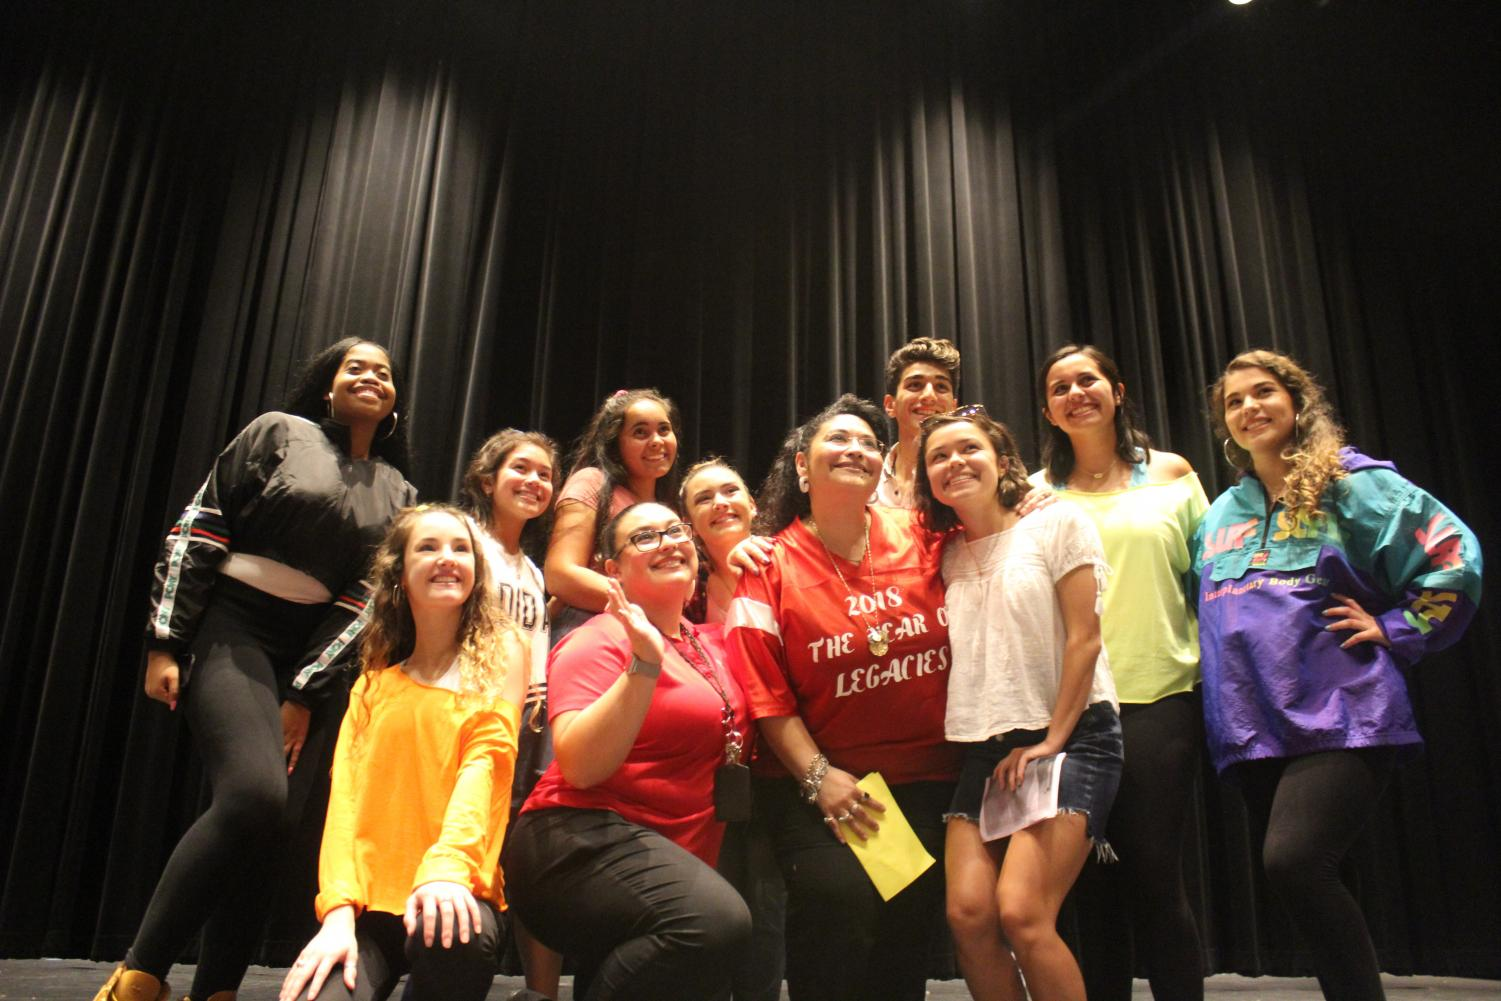 Senior and junior class officers get together for a group picture during the annual Lip Sync Battle. The groups are joining, along with Student Council officers, to create one group.